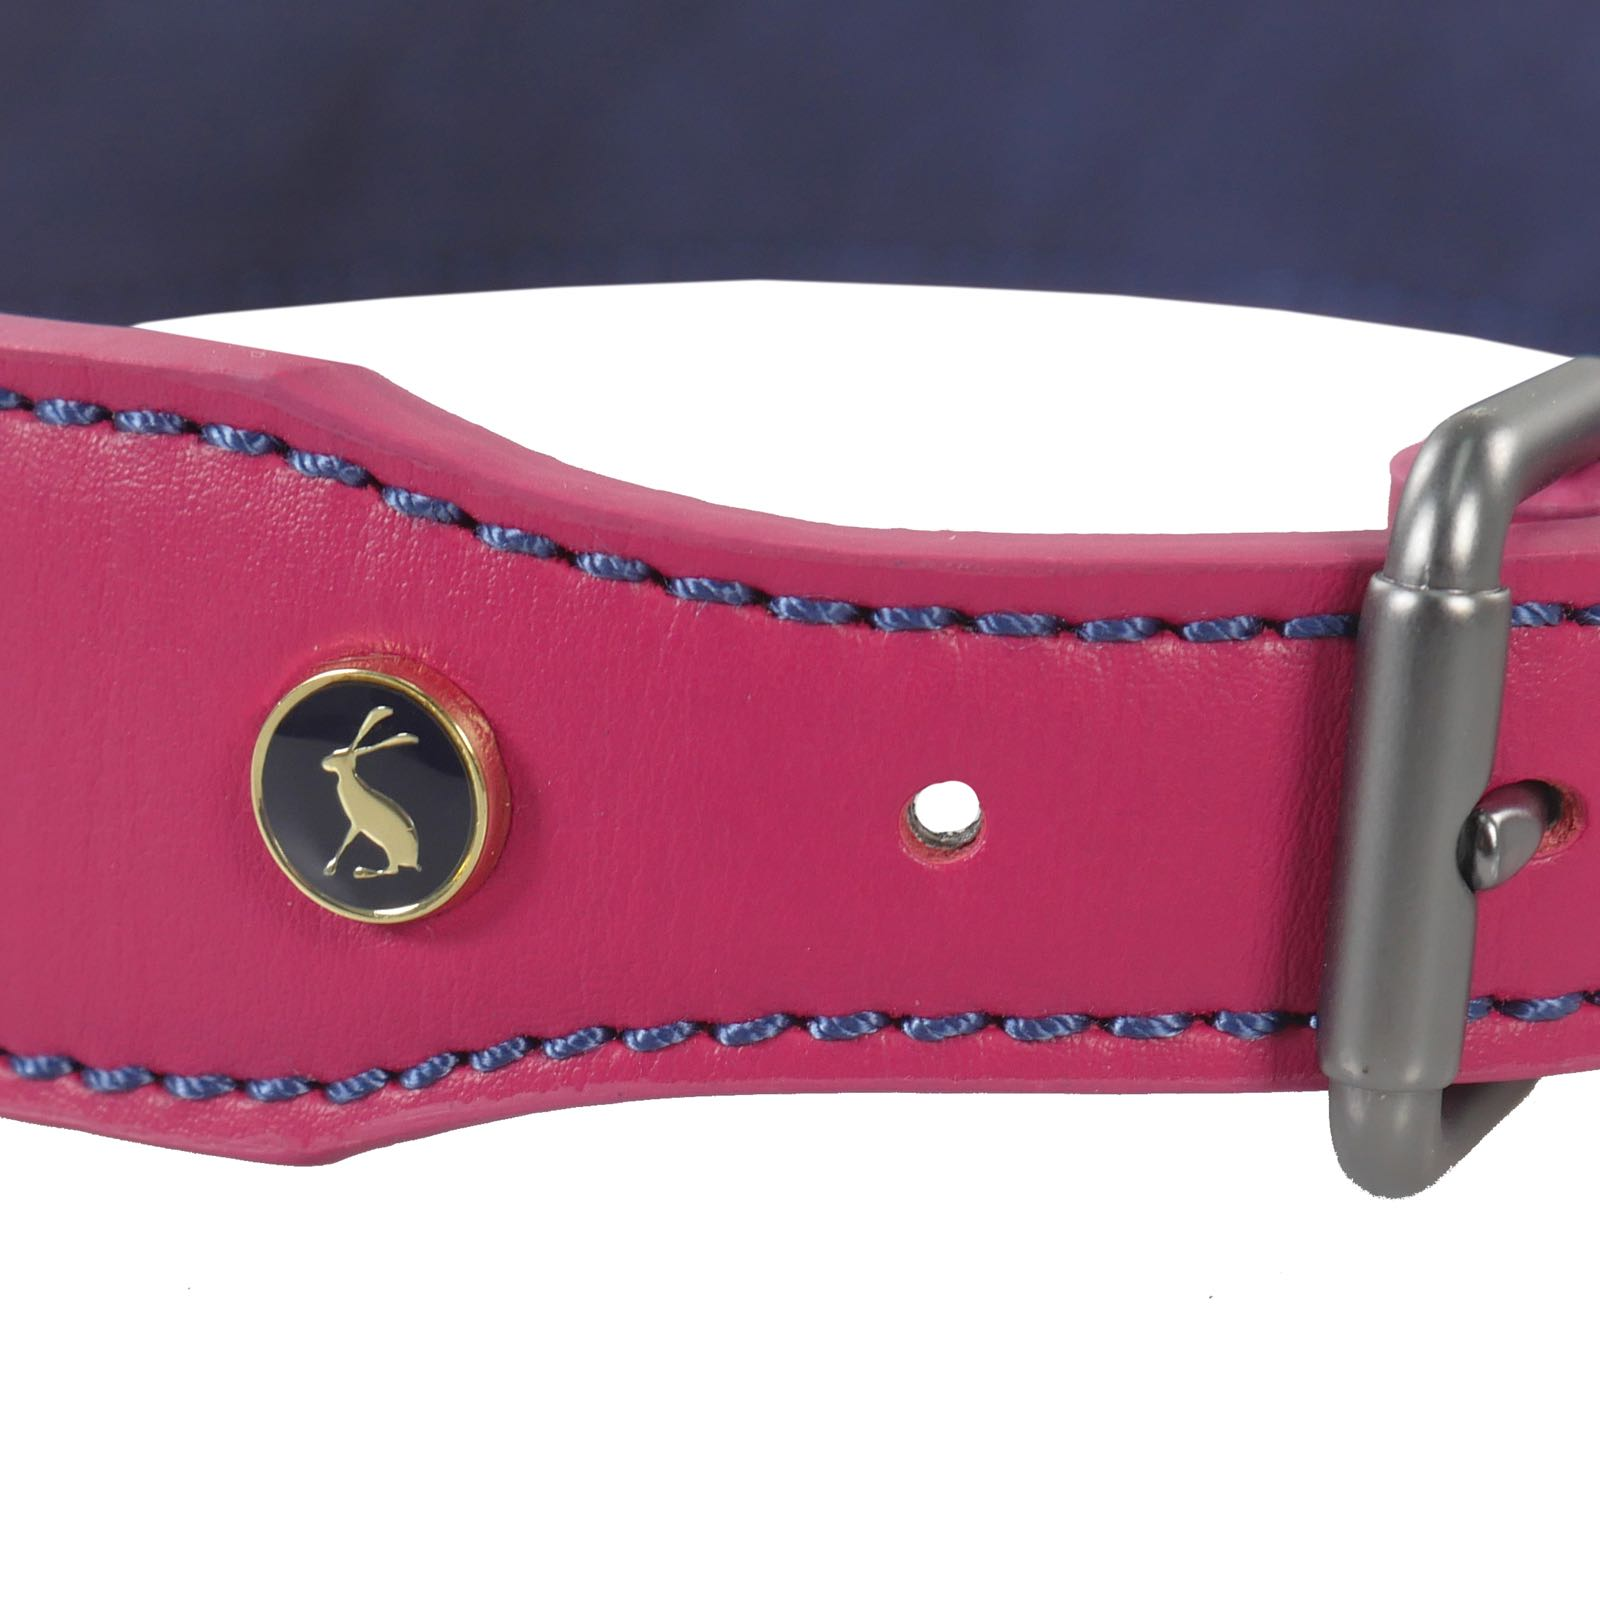 Joules Pink Leather Dog Collar XLarge 56cm-66cm Golden Retrievers/Rottweiler/Setter  Was £14